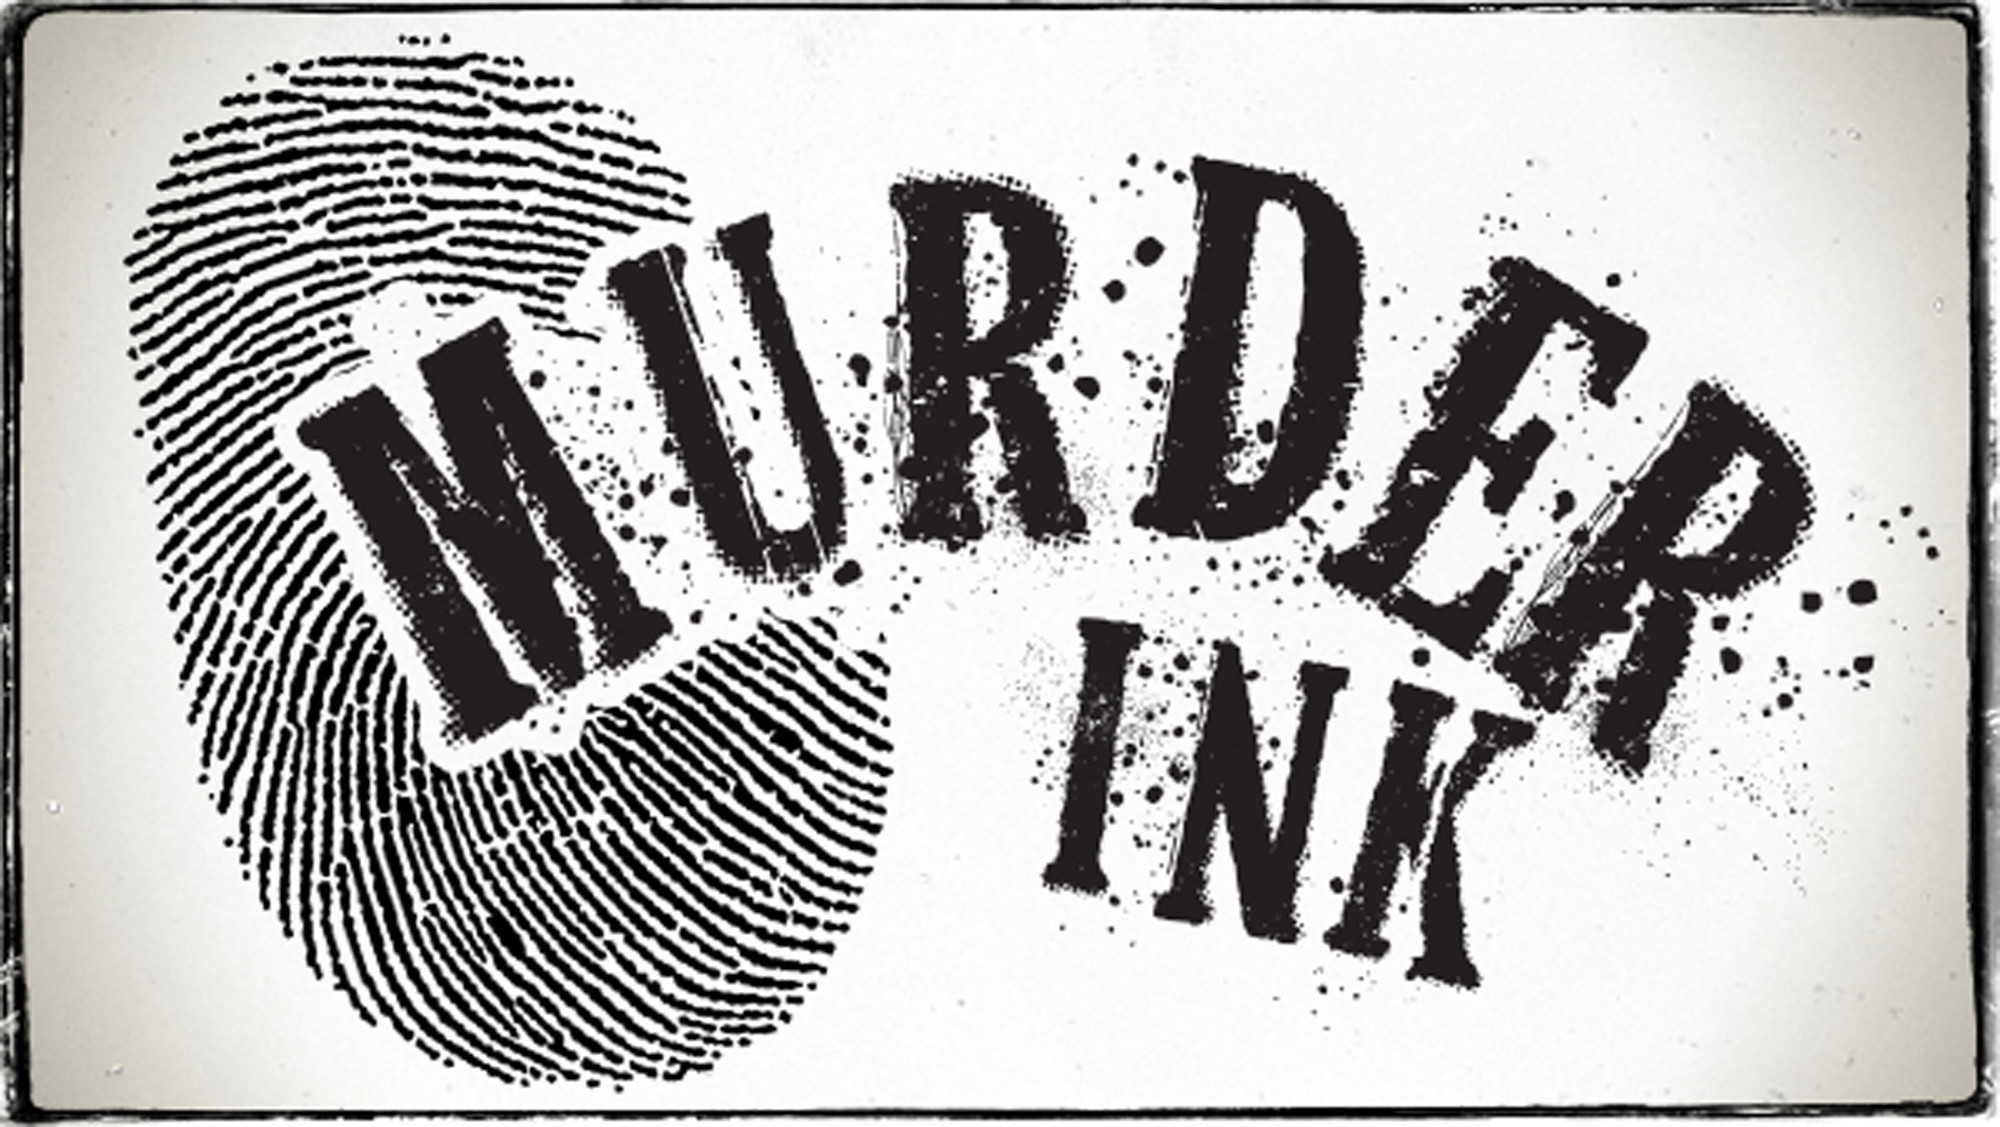 Murder Ink: 244 murders this year, 14 murders over the past two